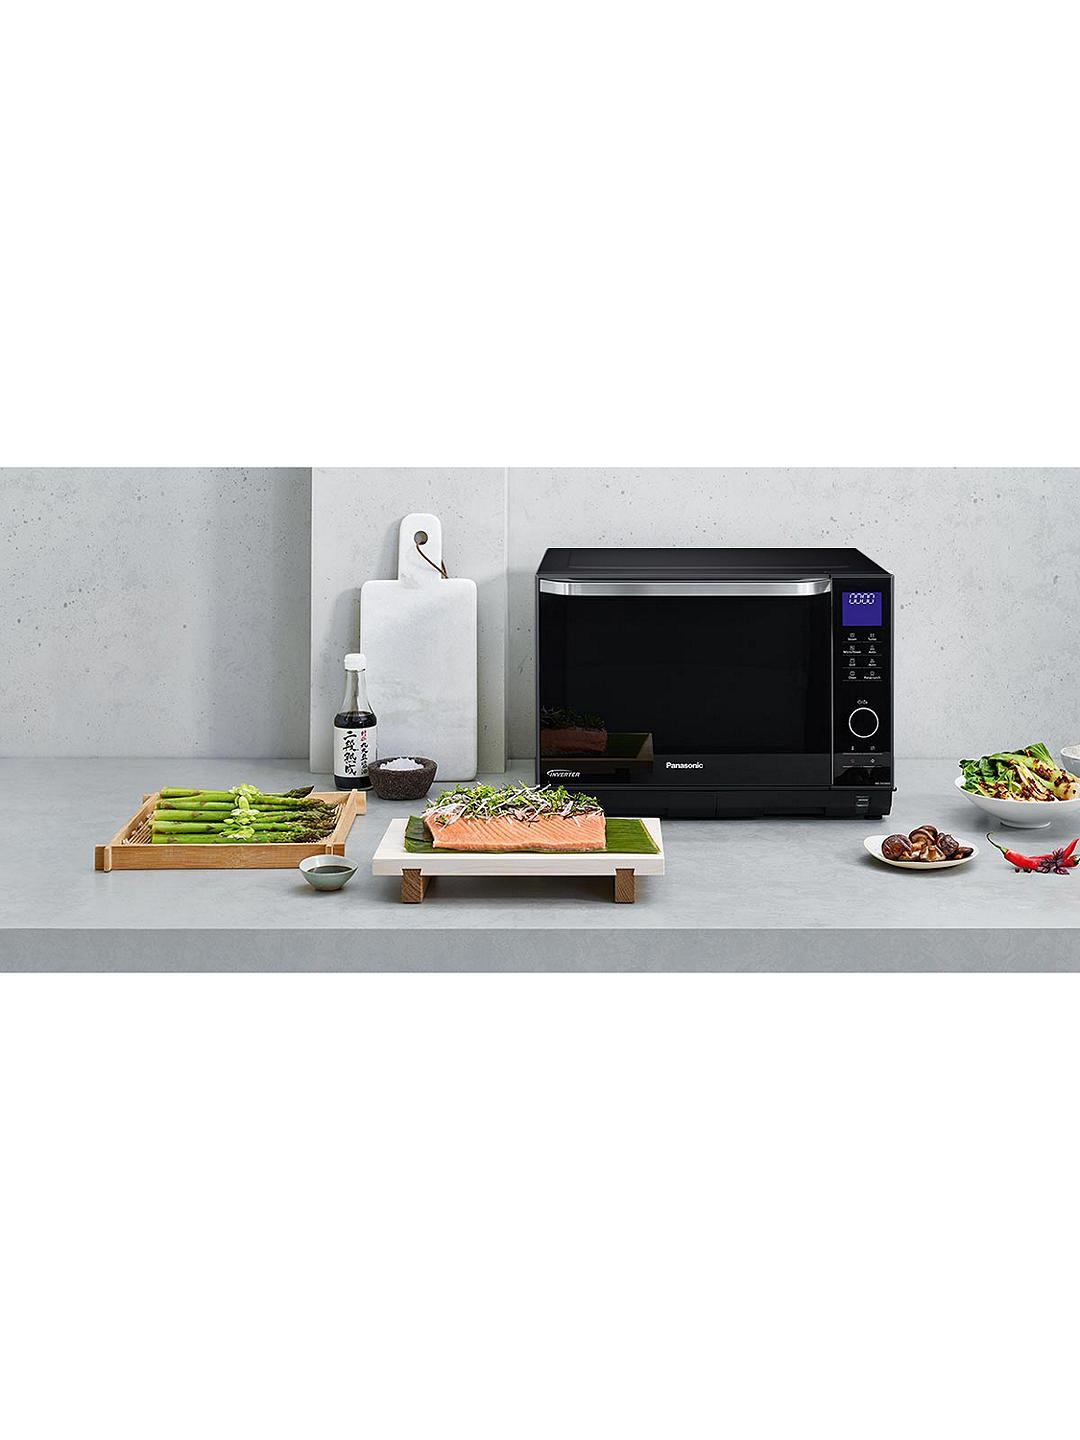 Buy Panasonic NN-DS596BBPQ Freestanding 4-in-1 Steam Combination Microwave Oven with Grill, Black Online at johnlewis.com